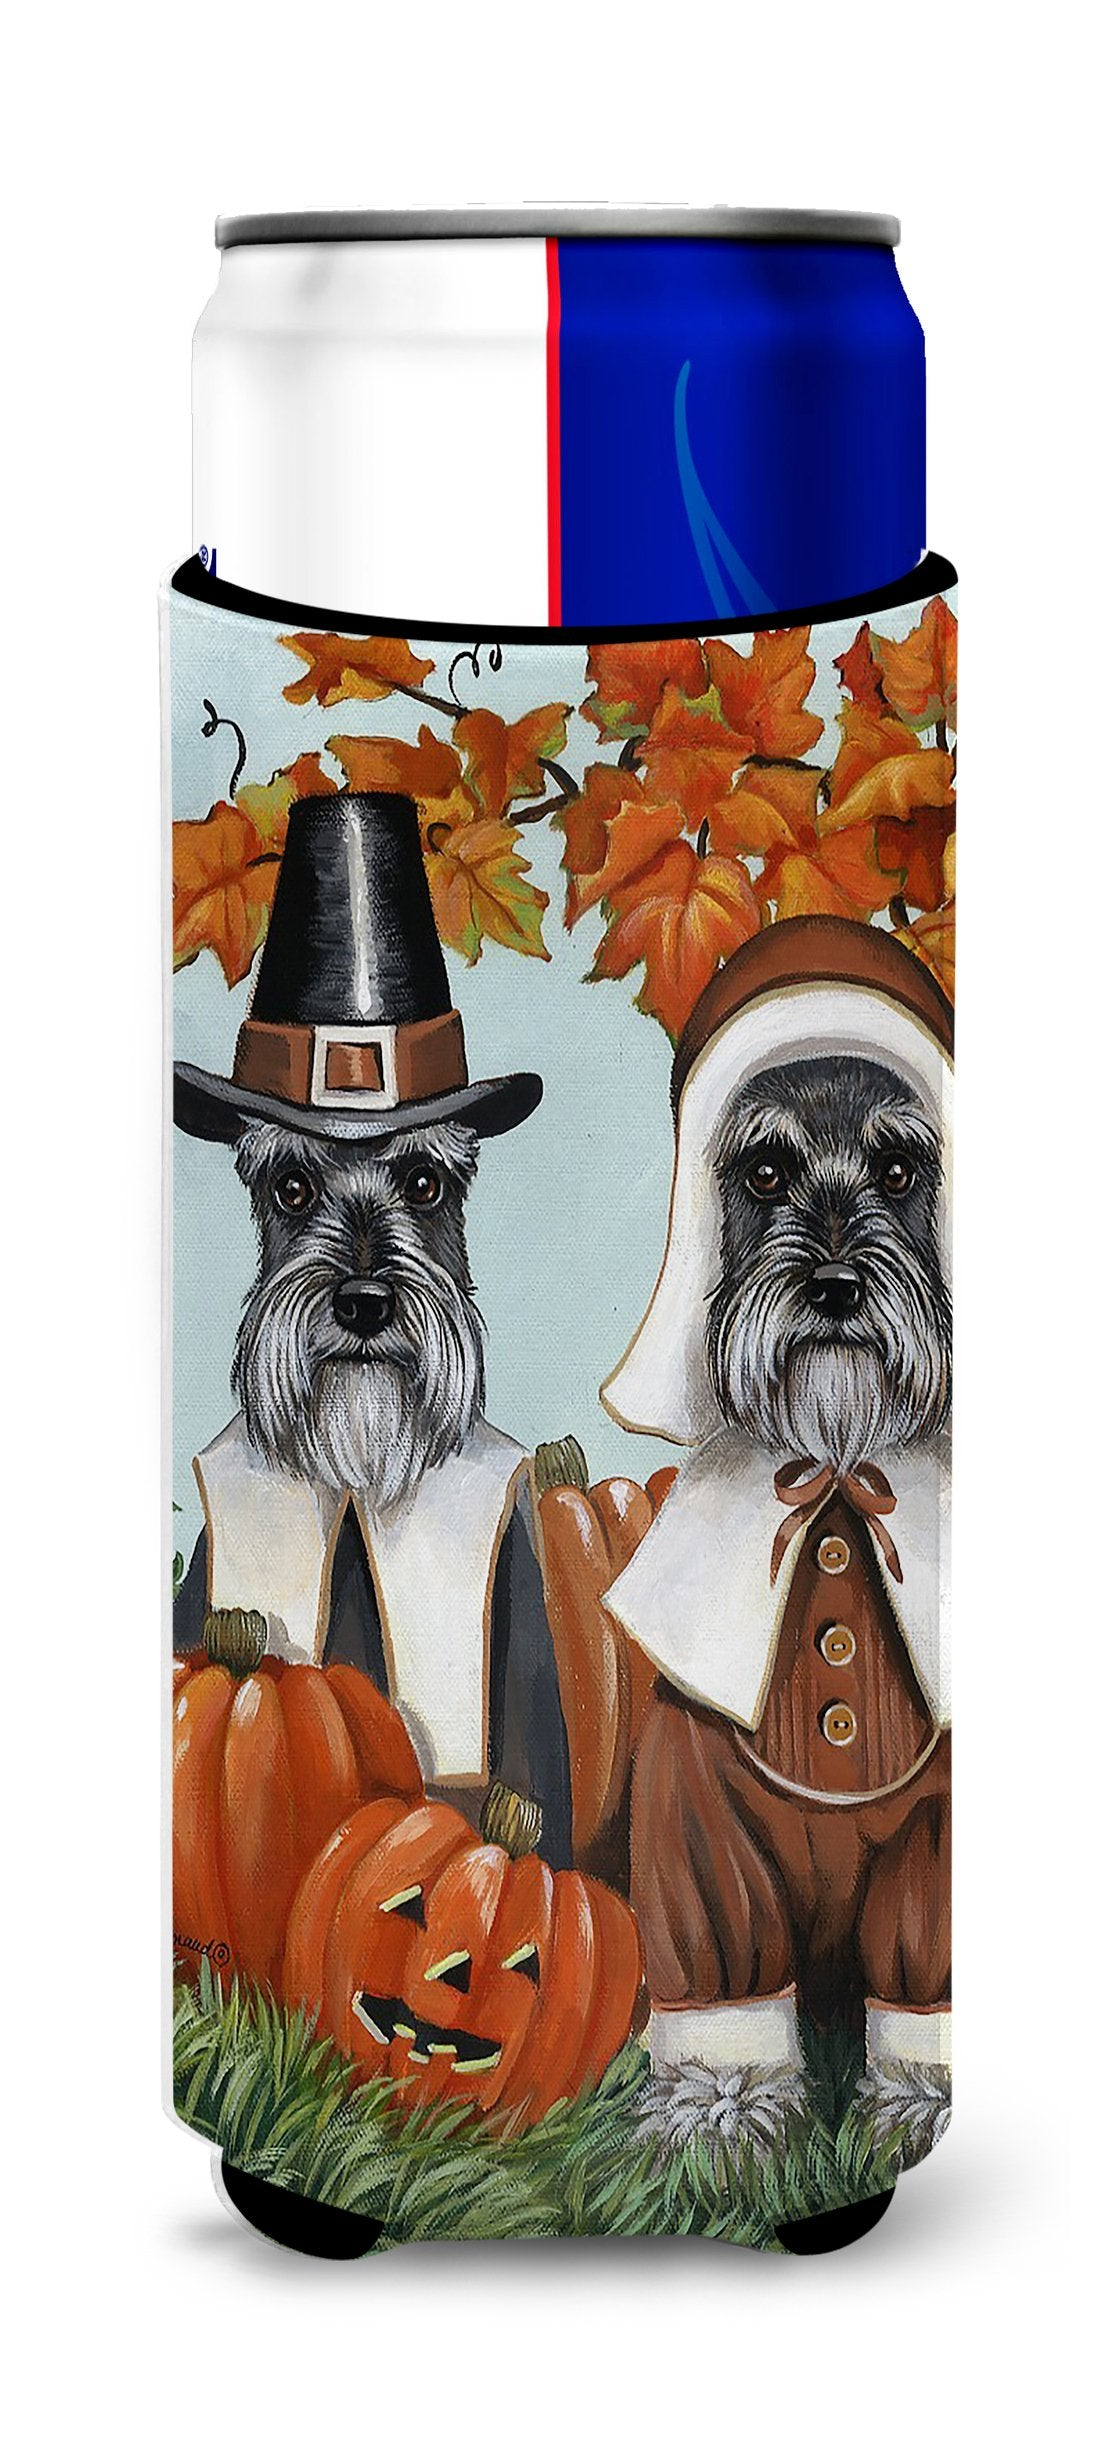 Schnauzer Thanksgiving Pilgrims Ultra Hugger for slim cans PPP3167MUK by Caroline's Treasures